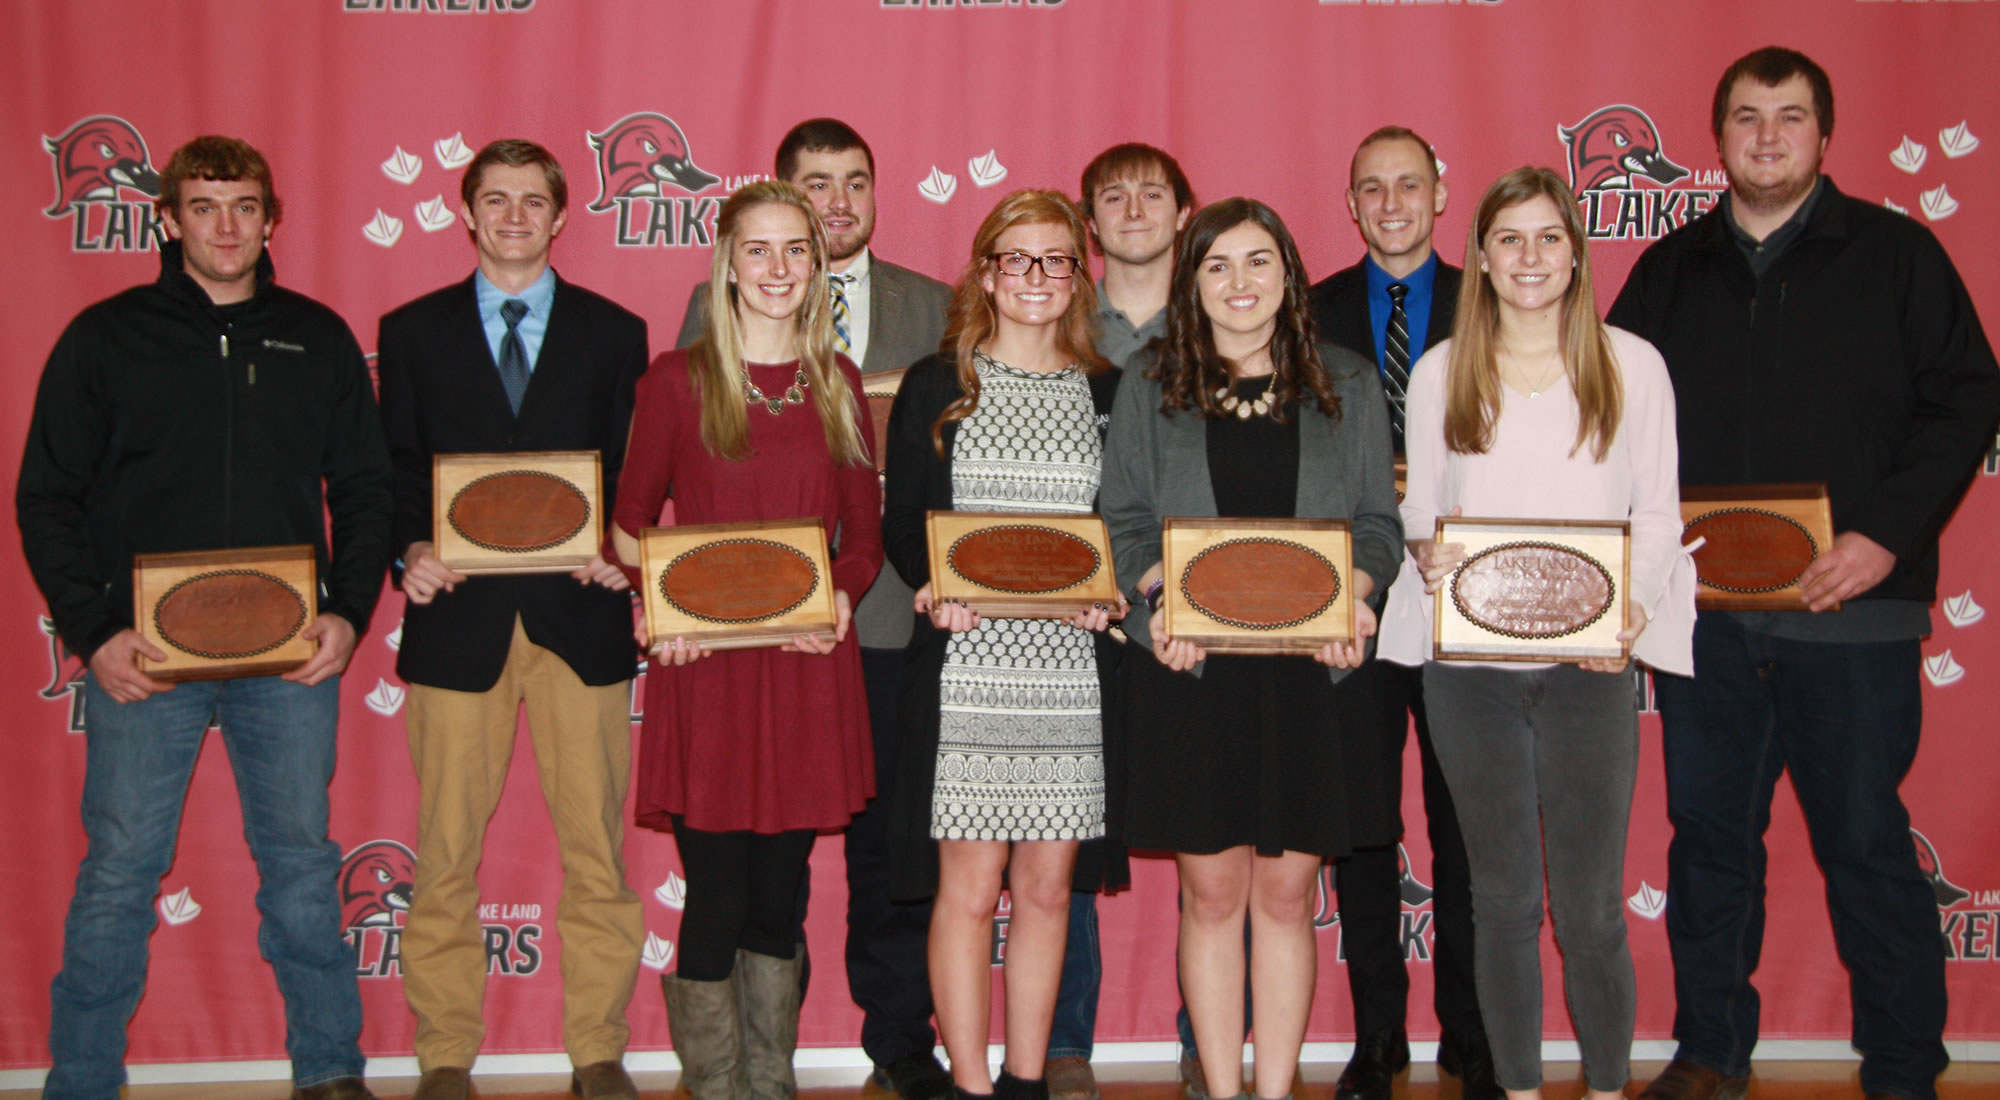 Lake Land College celebrates agriculture students at annual awards banquet